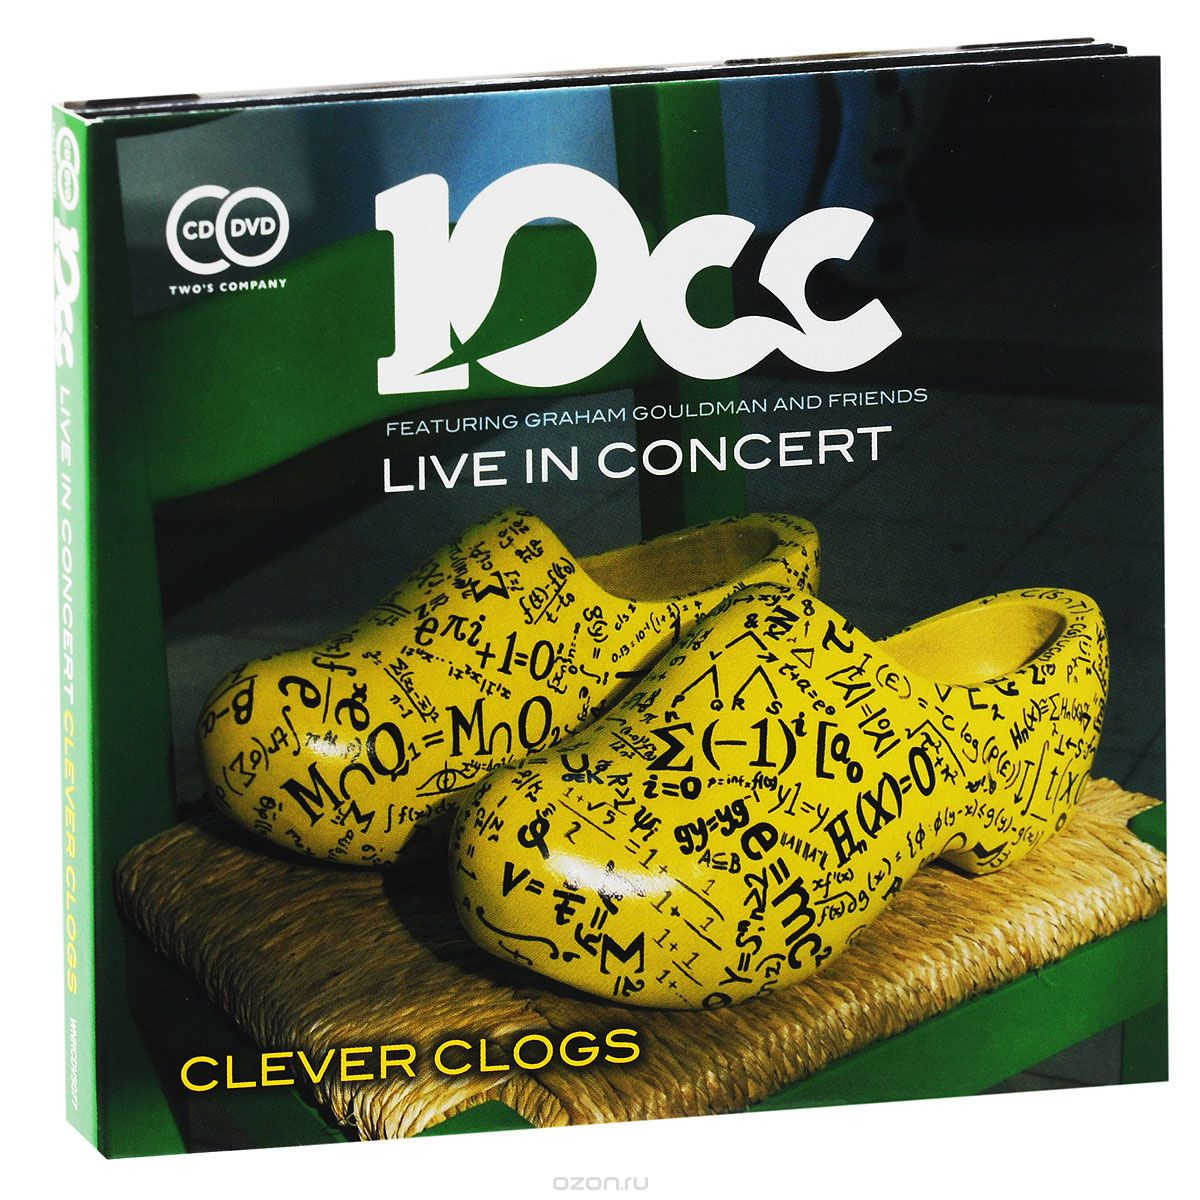 10CC. Live In Concert. Clever Clogs (CD + DVD)